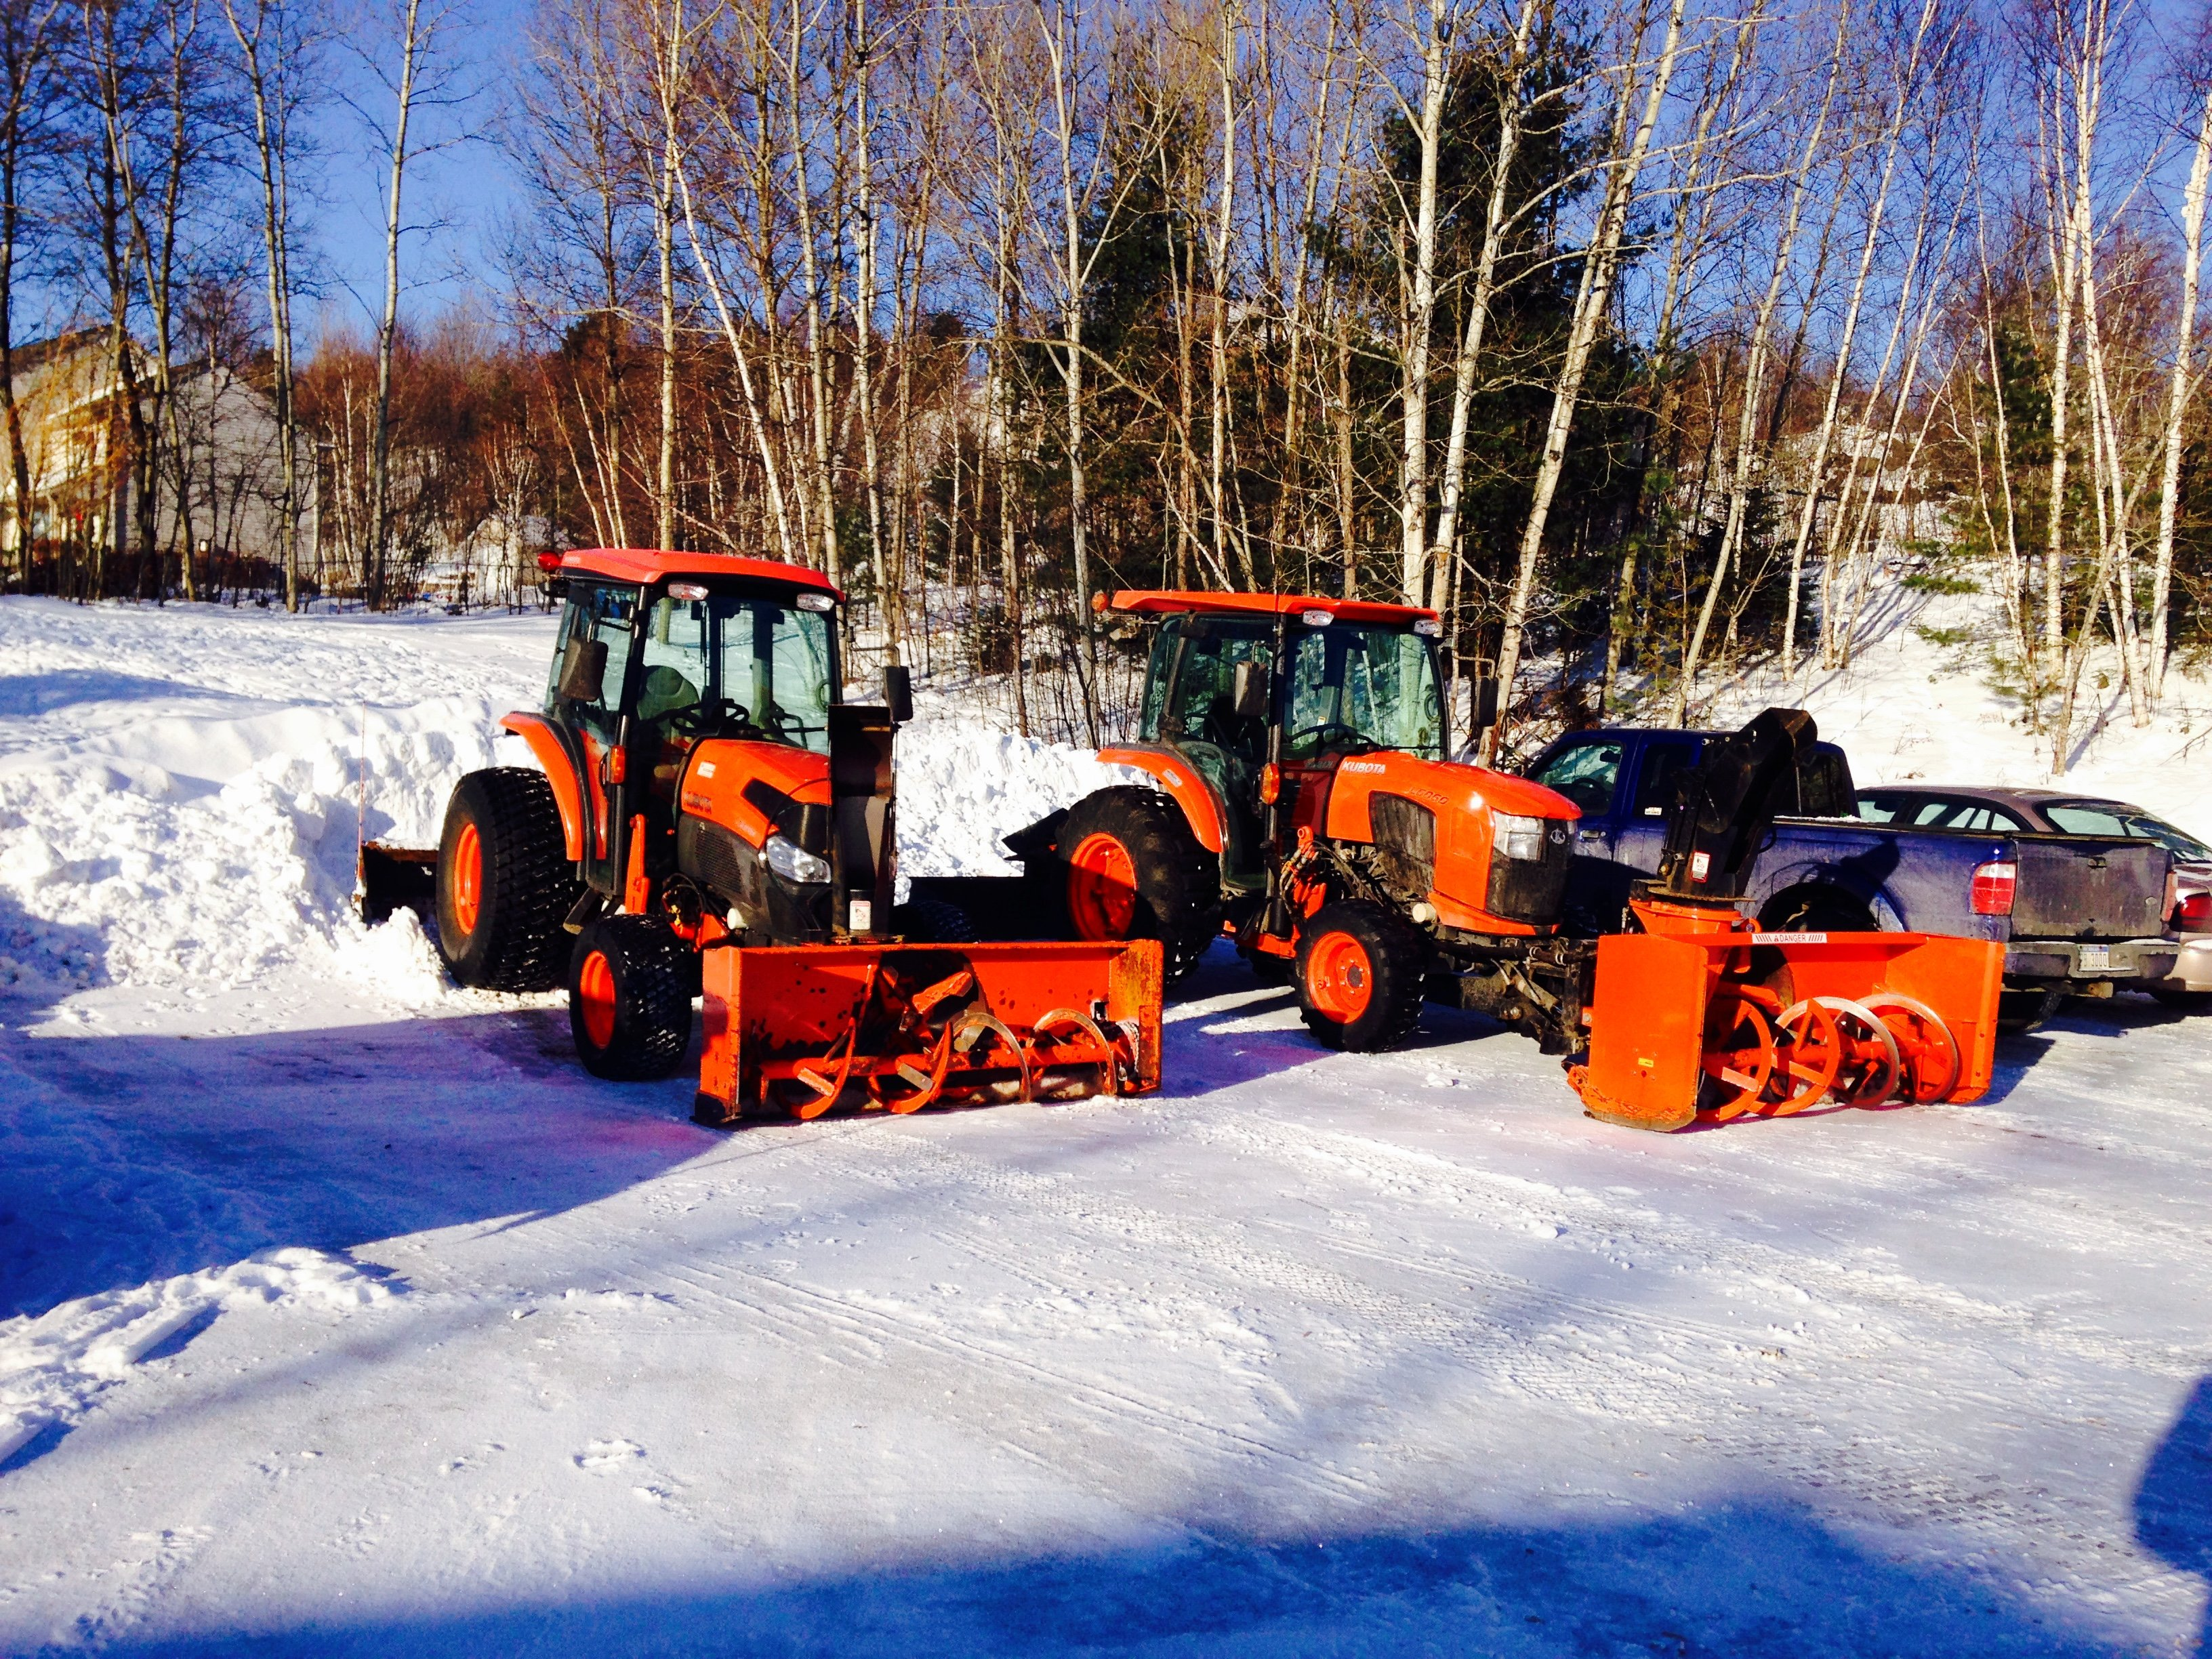 Michigan marquette county gwinn - Quality Snow Maintenance